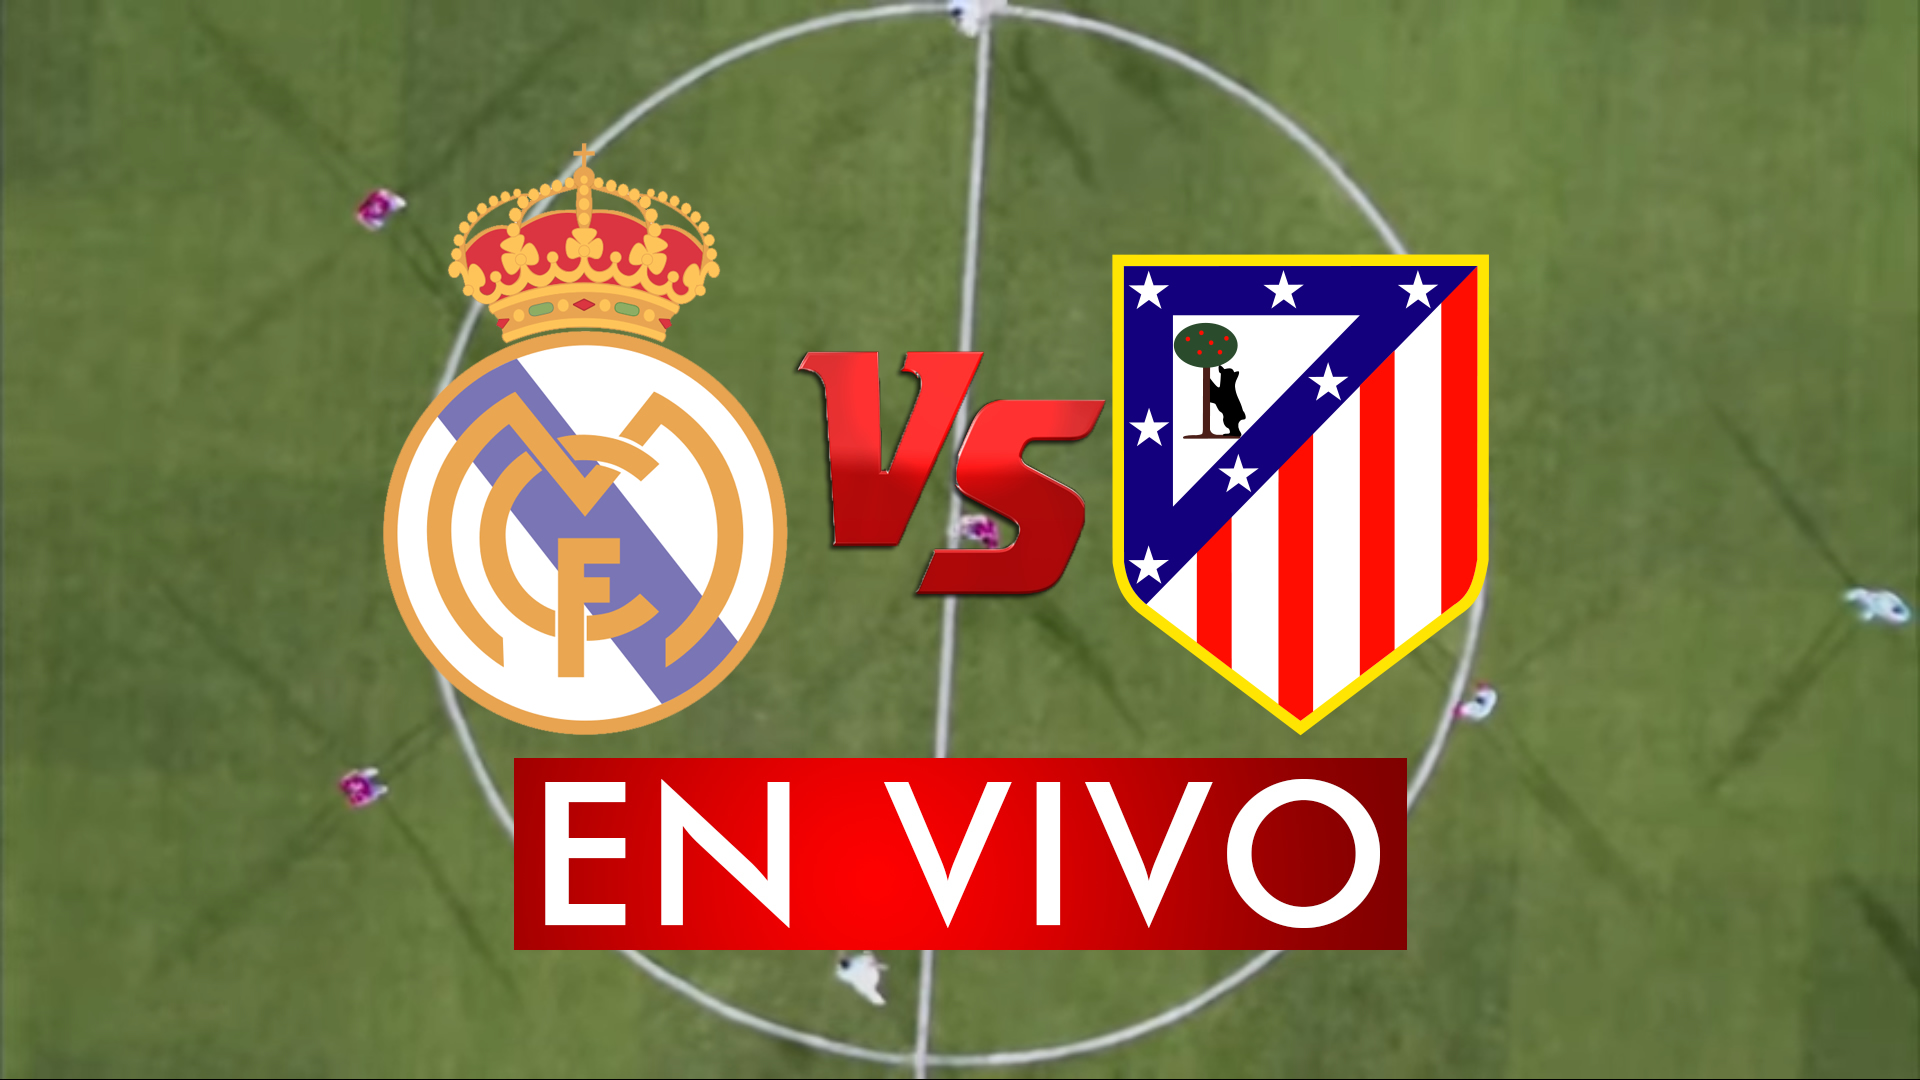 Real Madrid vs Atletico de Madrid EN VIVO ONLINE Live Steaming